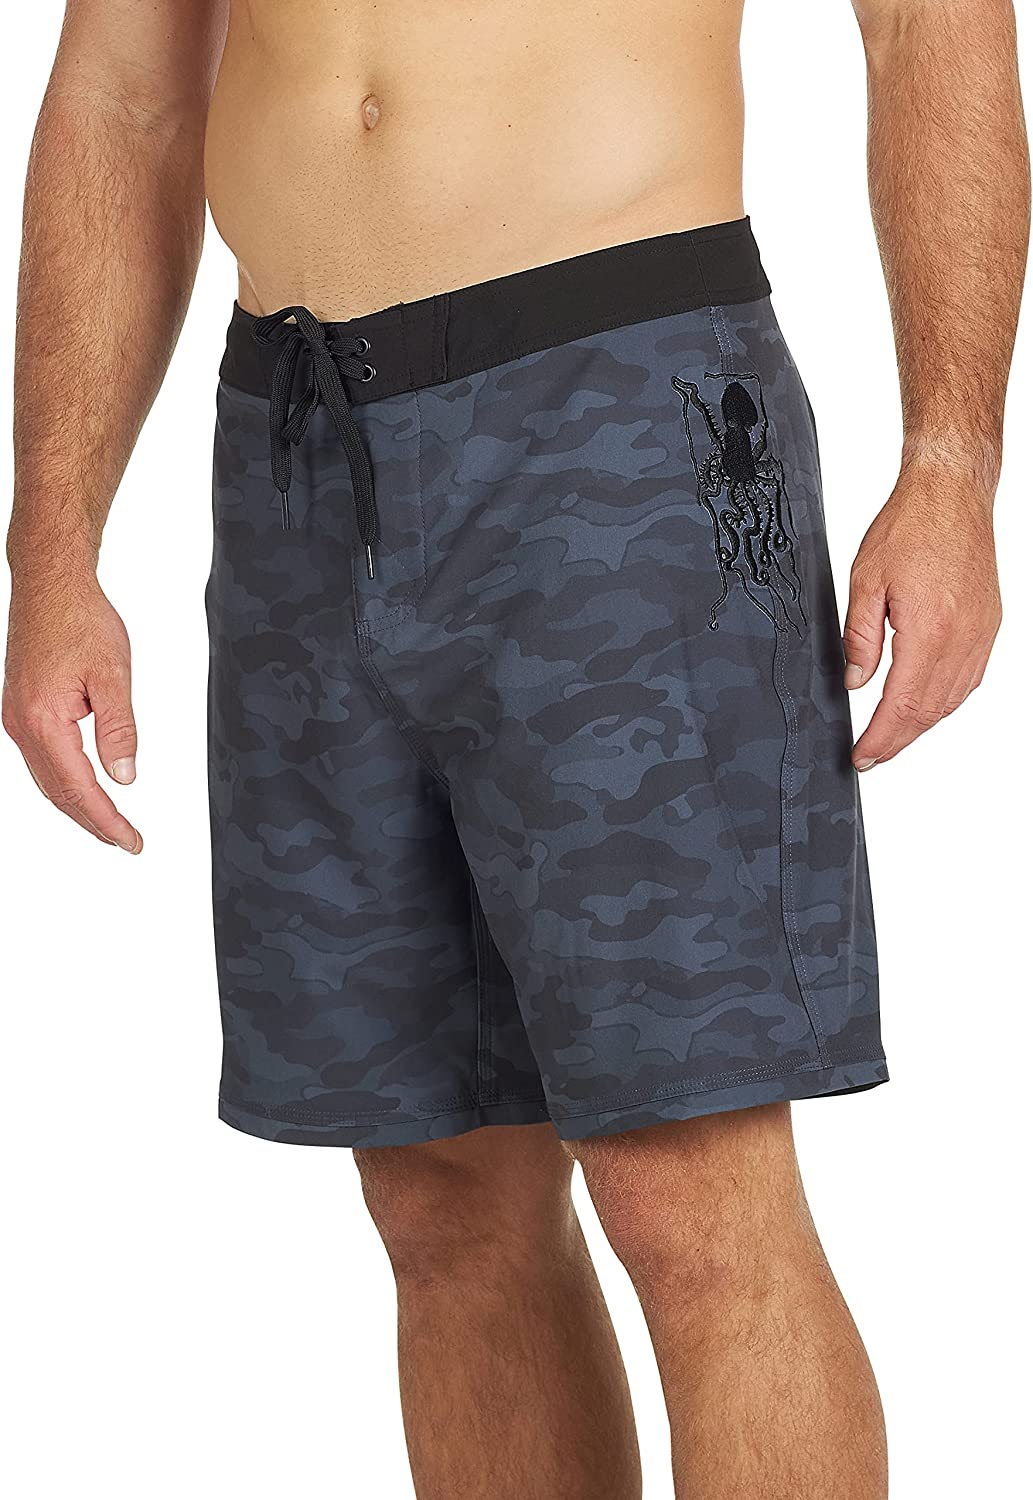 Maui Rippers Daily bargain sale Mens 19